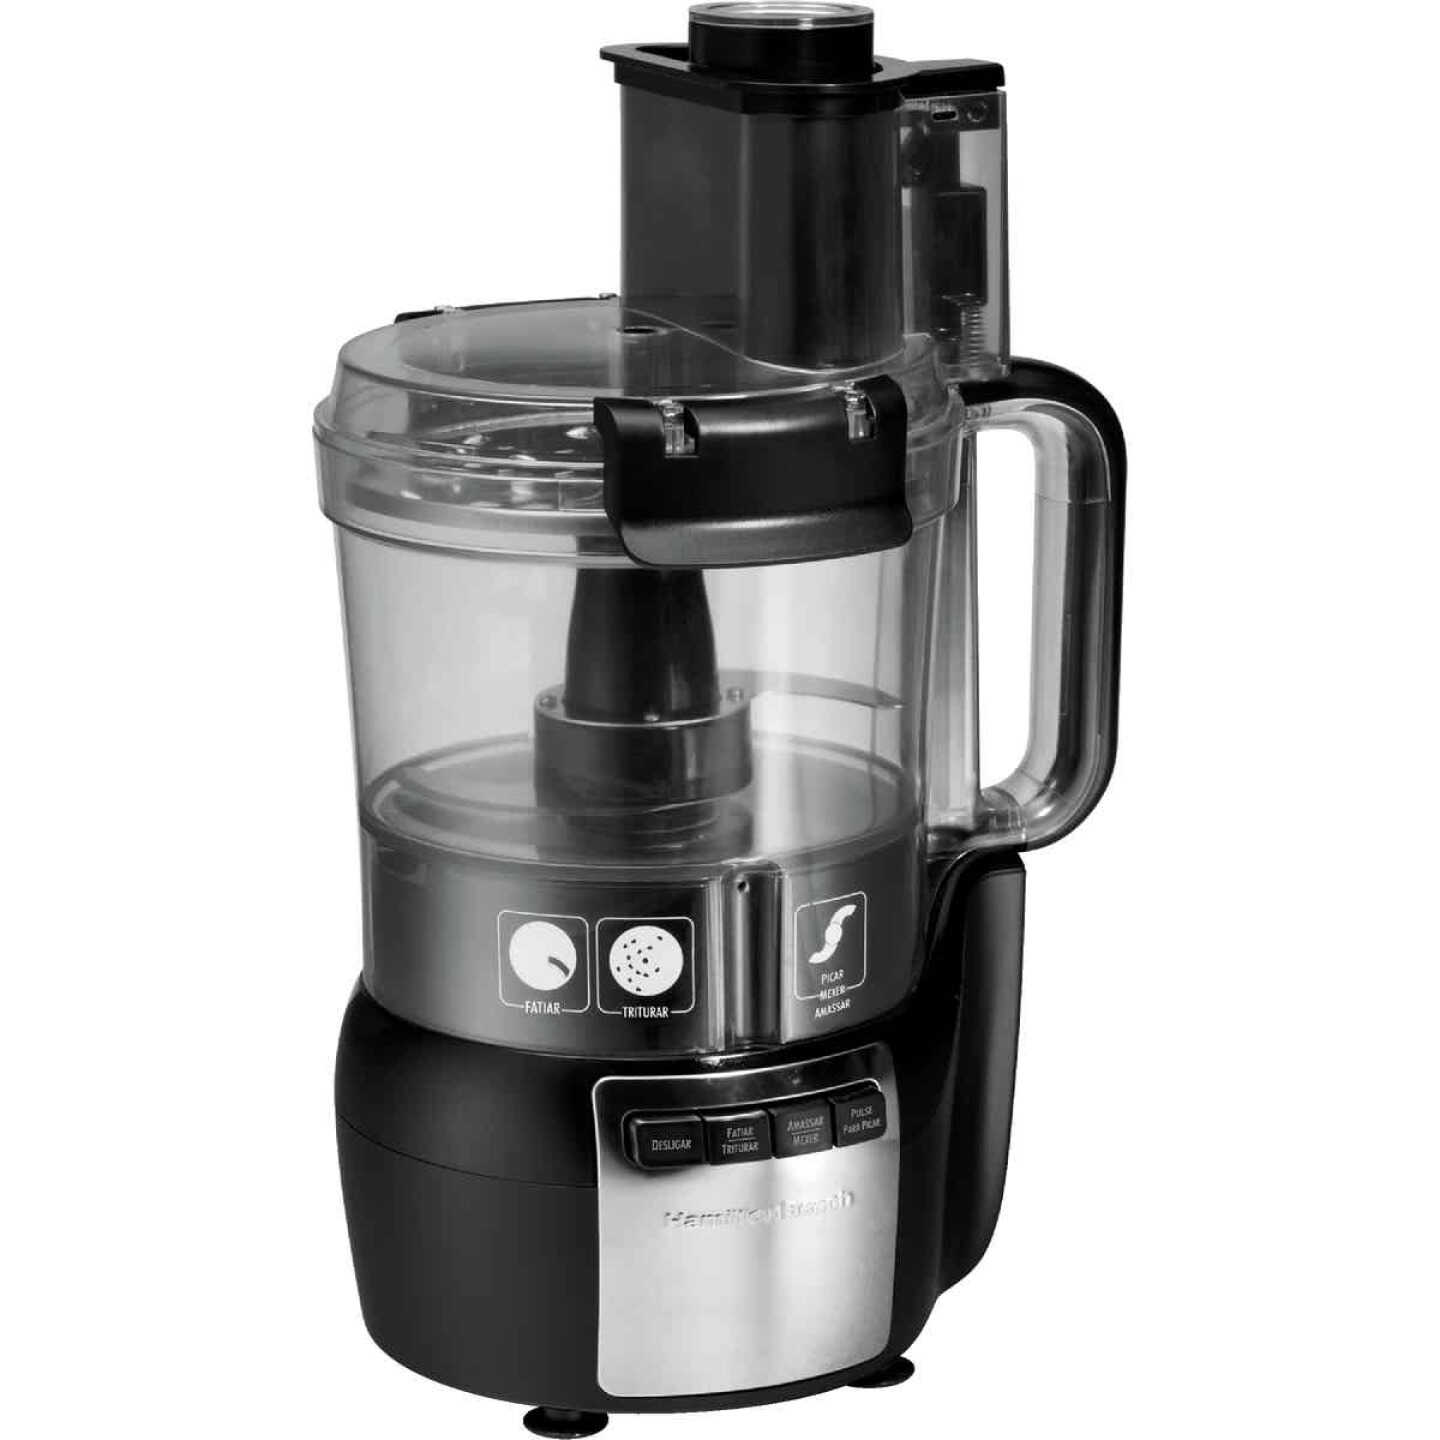 Hamilton Beach Stack & Snap 10-Cup Black Food Processor with Big Mouth Image 3